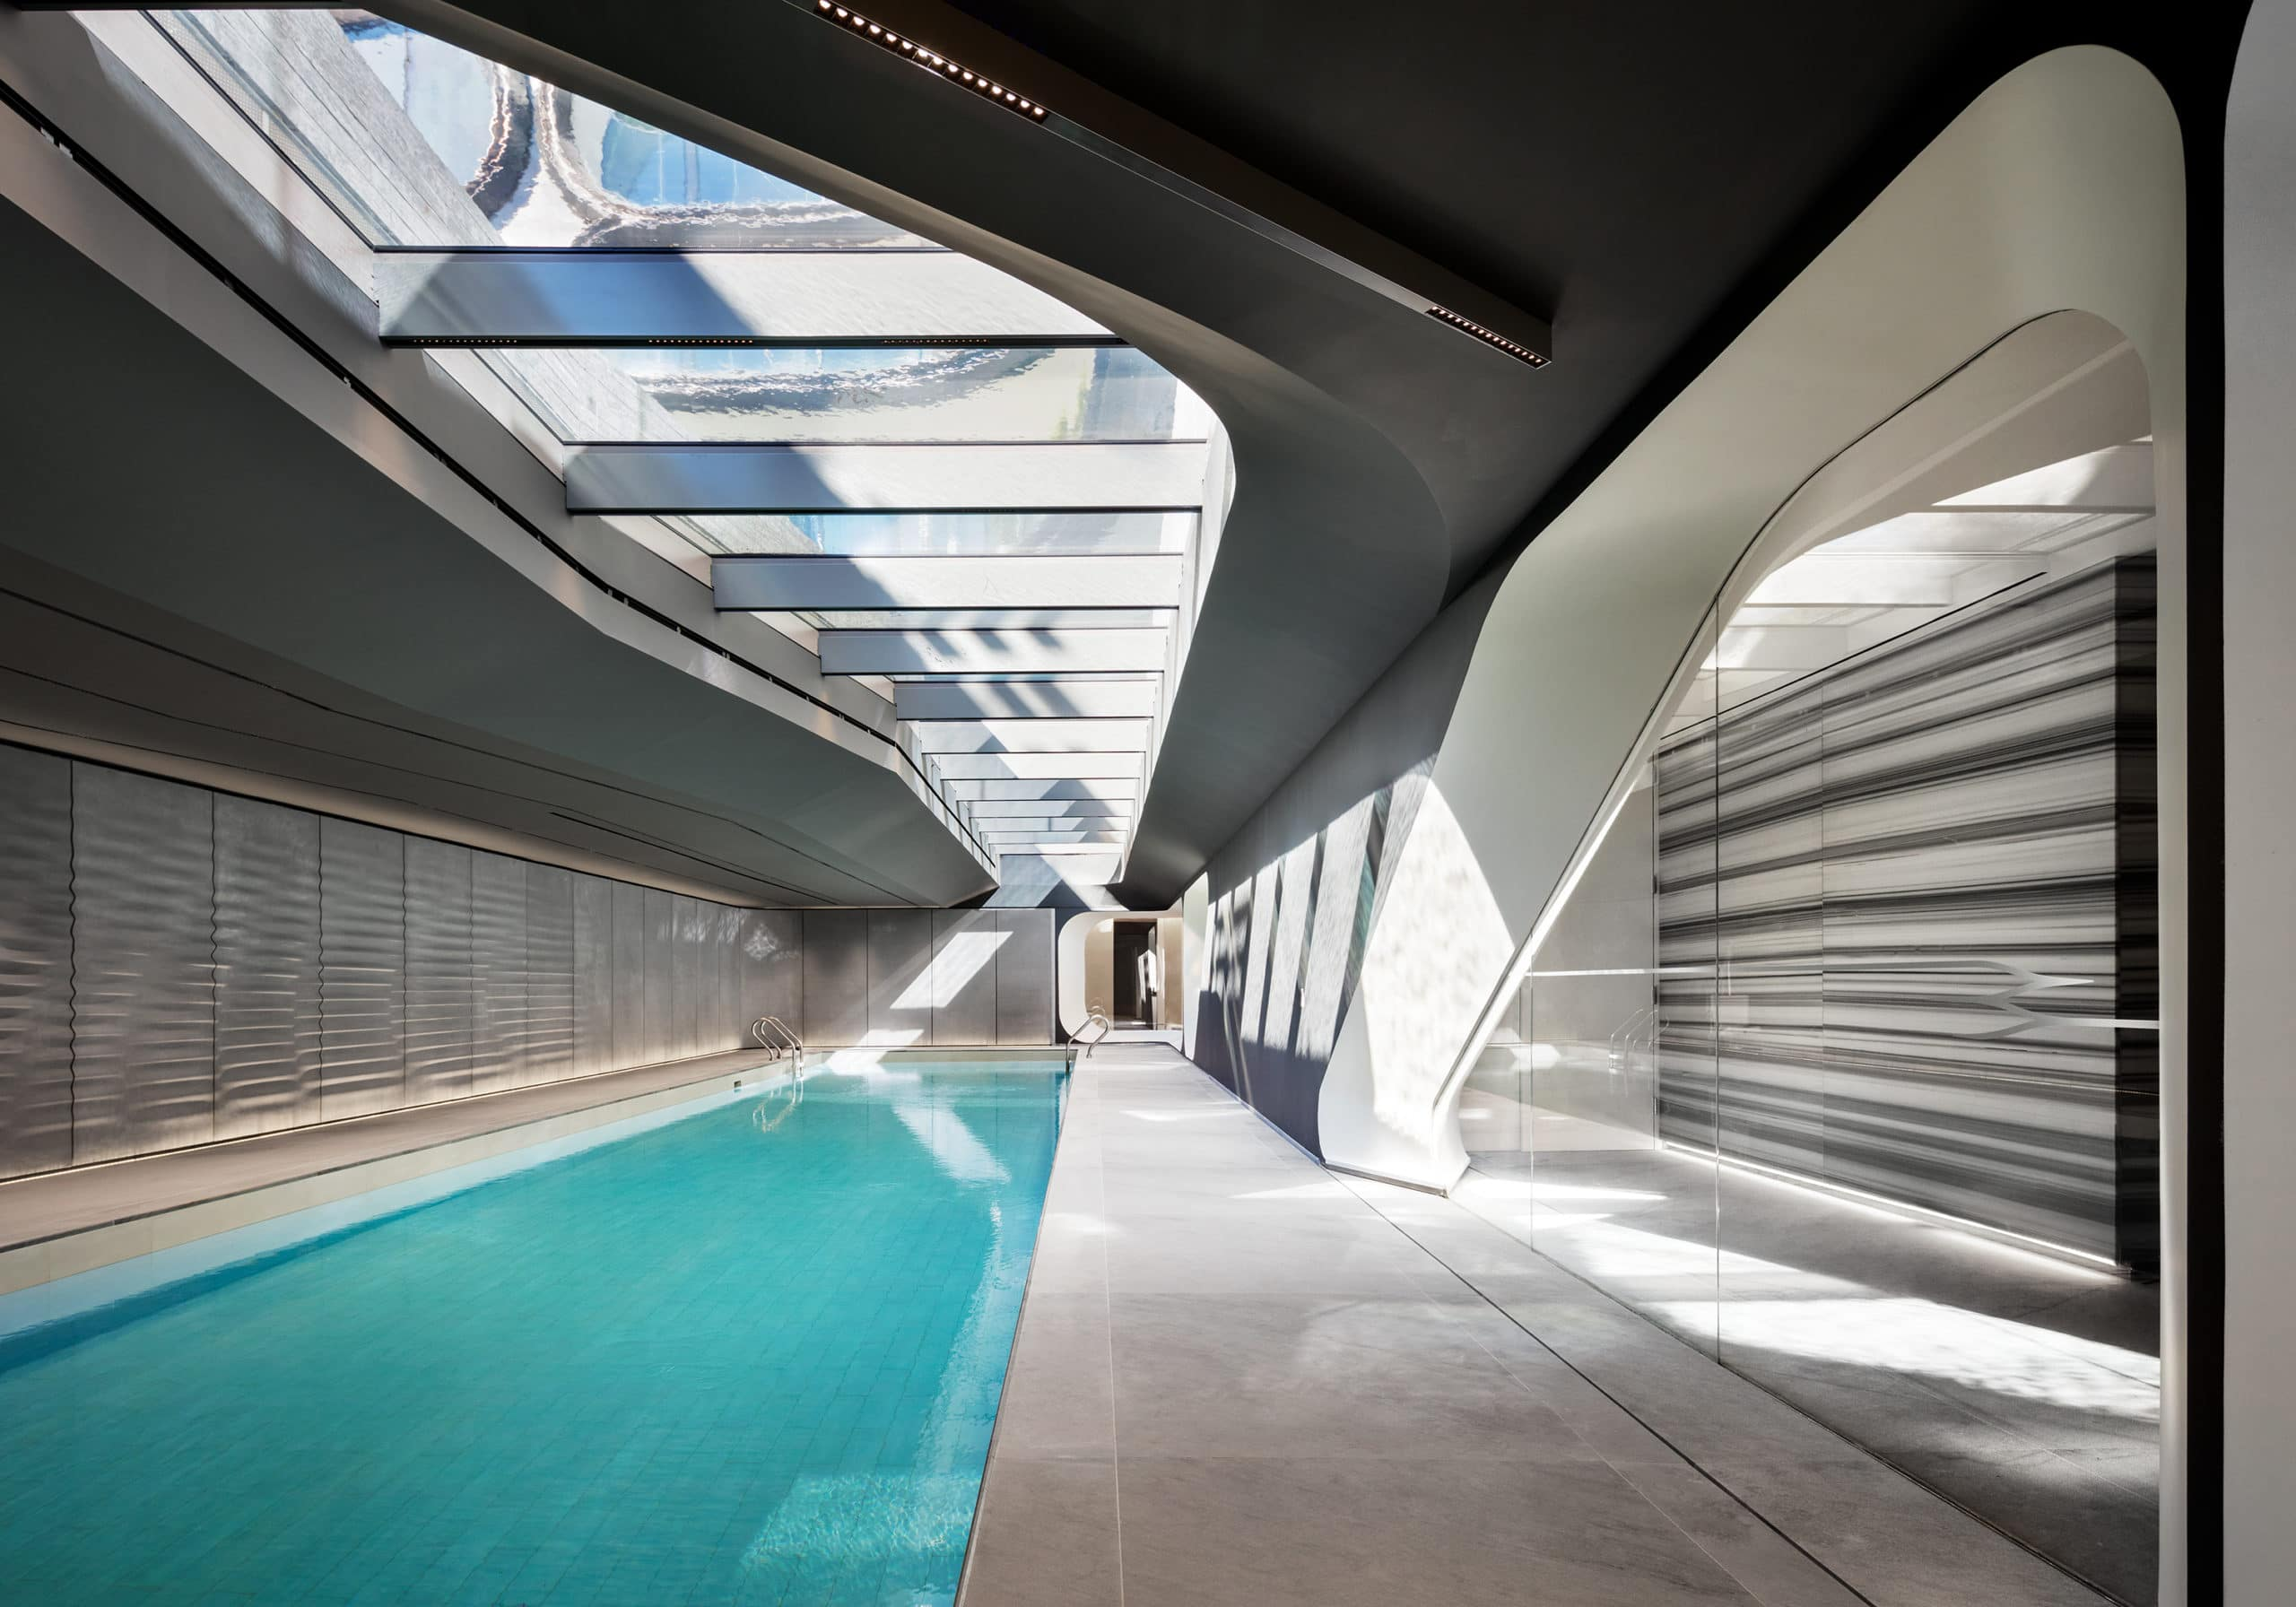 75-foot saline swimming pool at 520 W 28 condominiums is illuminated by a series of skylights in New York City.